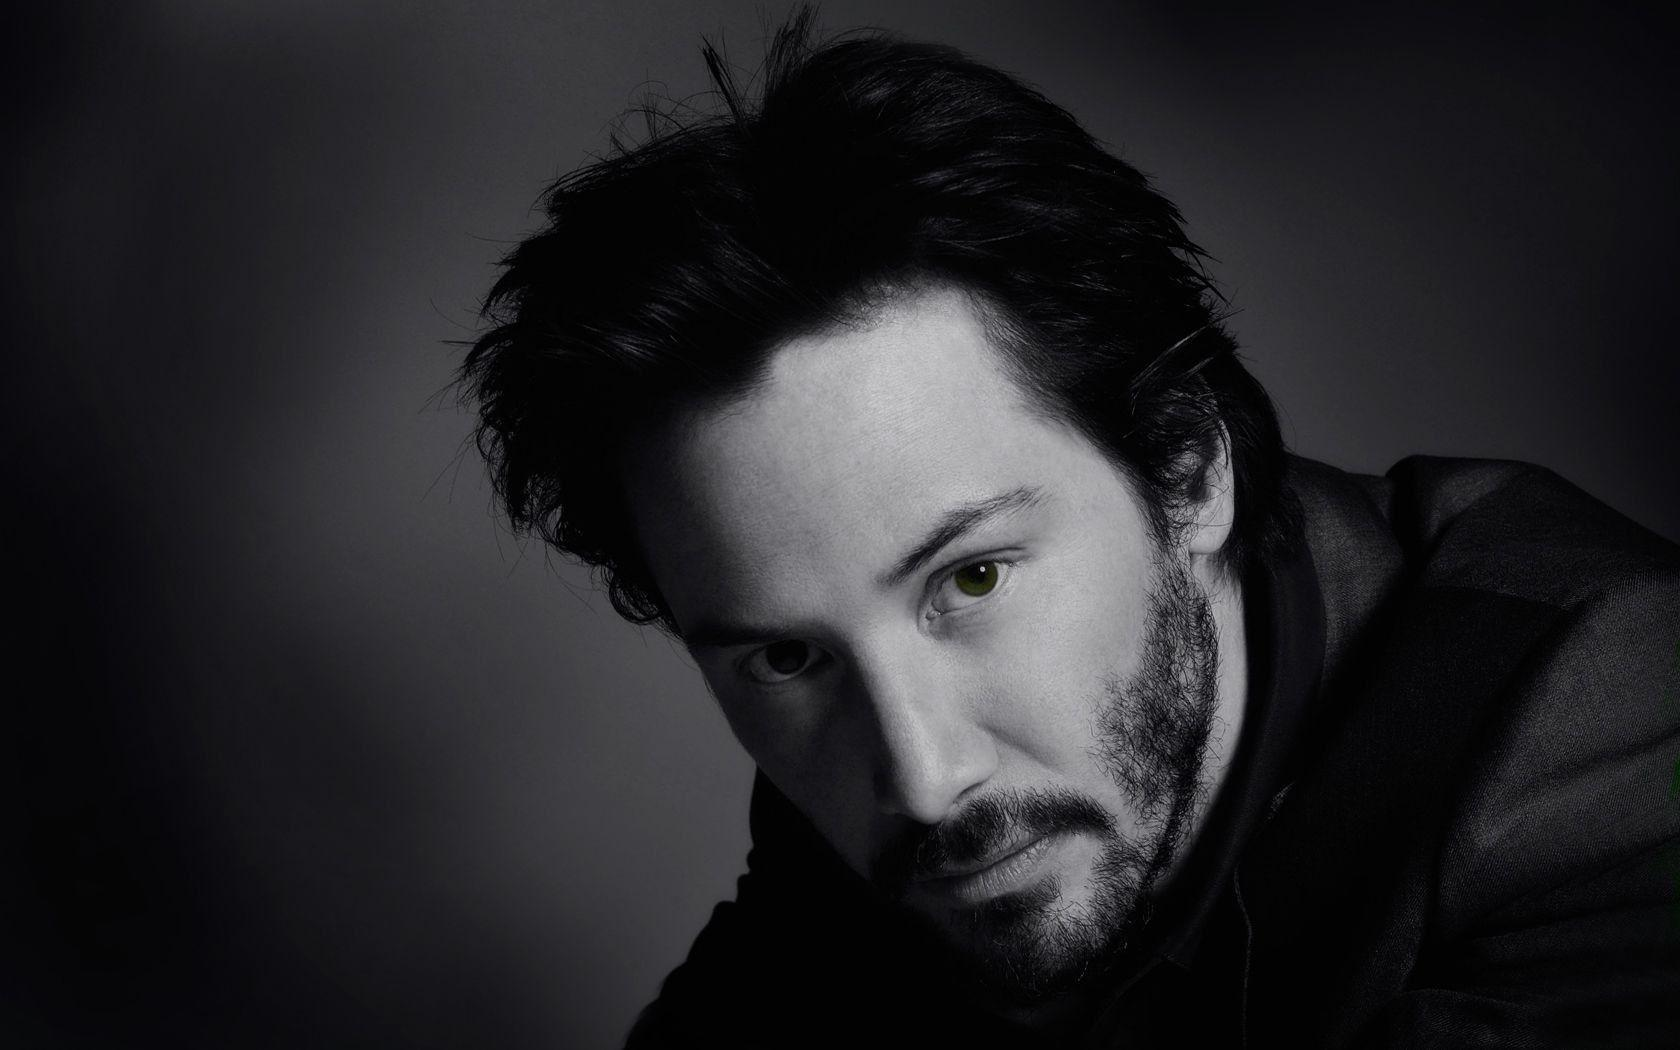 Keanu Reeves : Desktop and mobile wallpapers : Wallippo